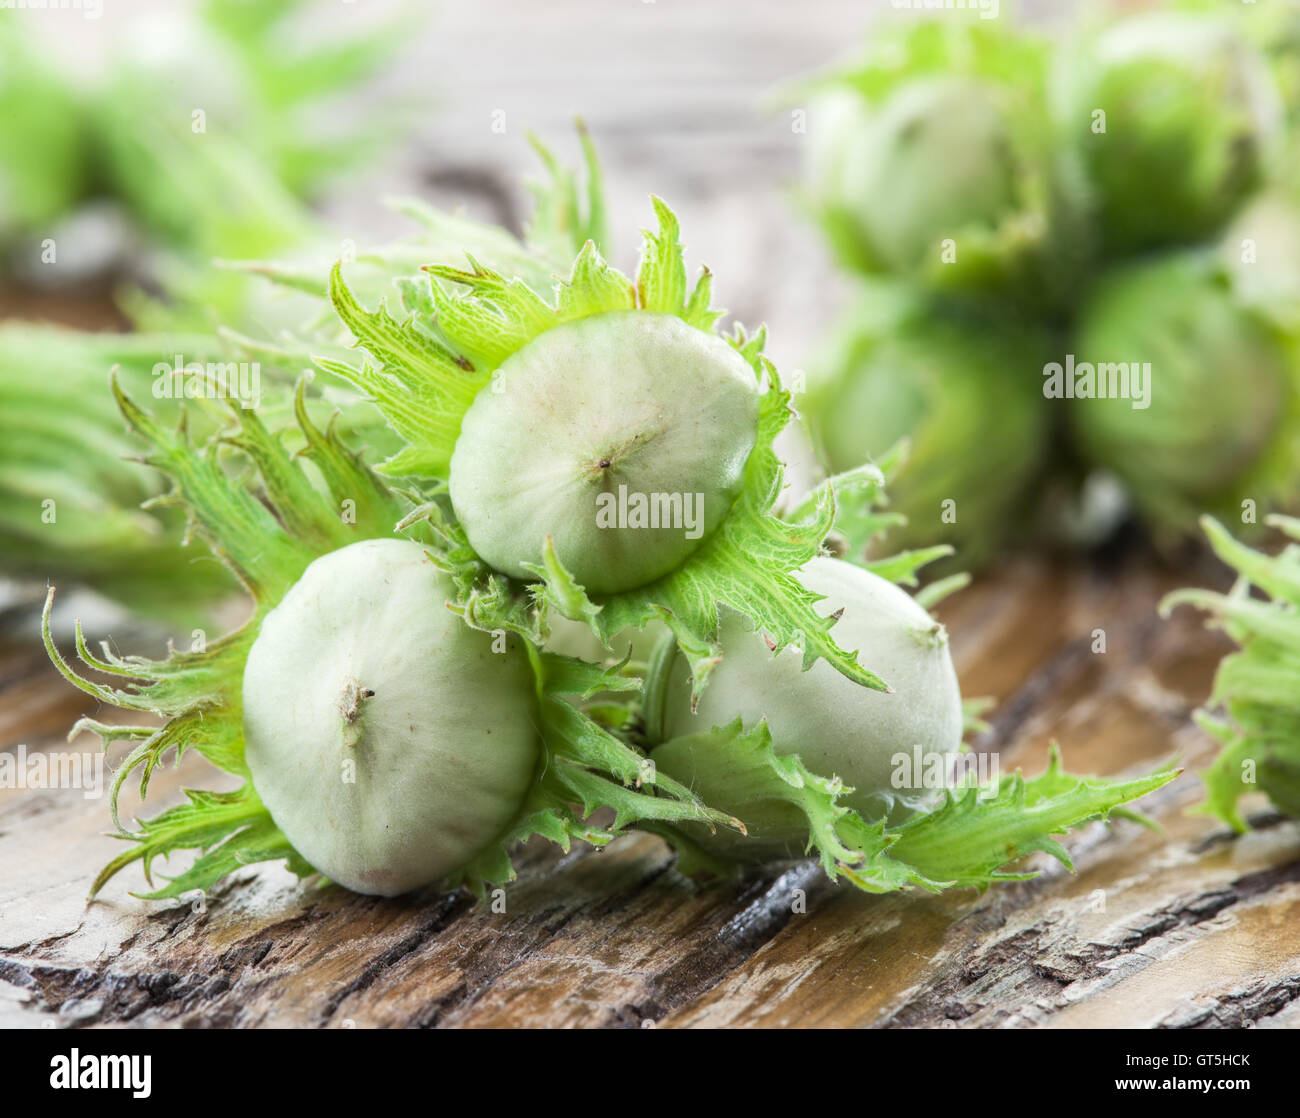 Young hazelnuts on the wooden table. - Stock Image